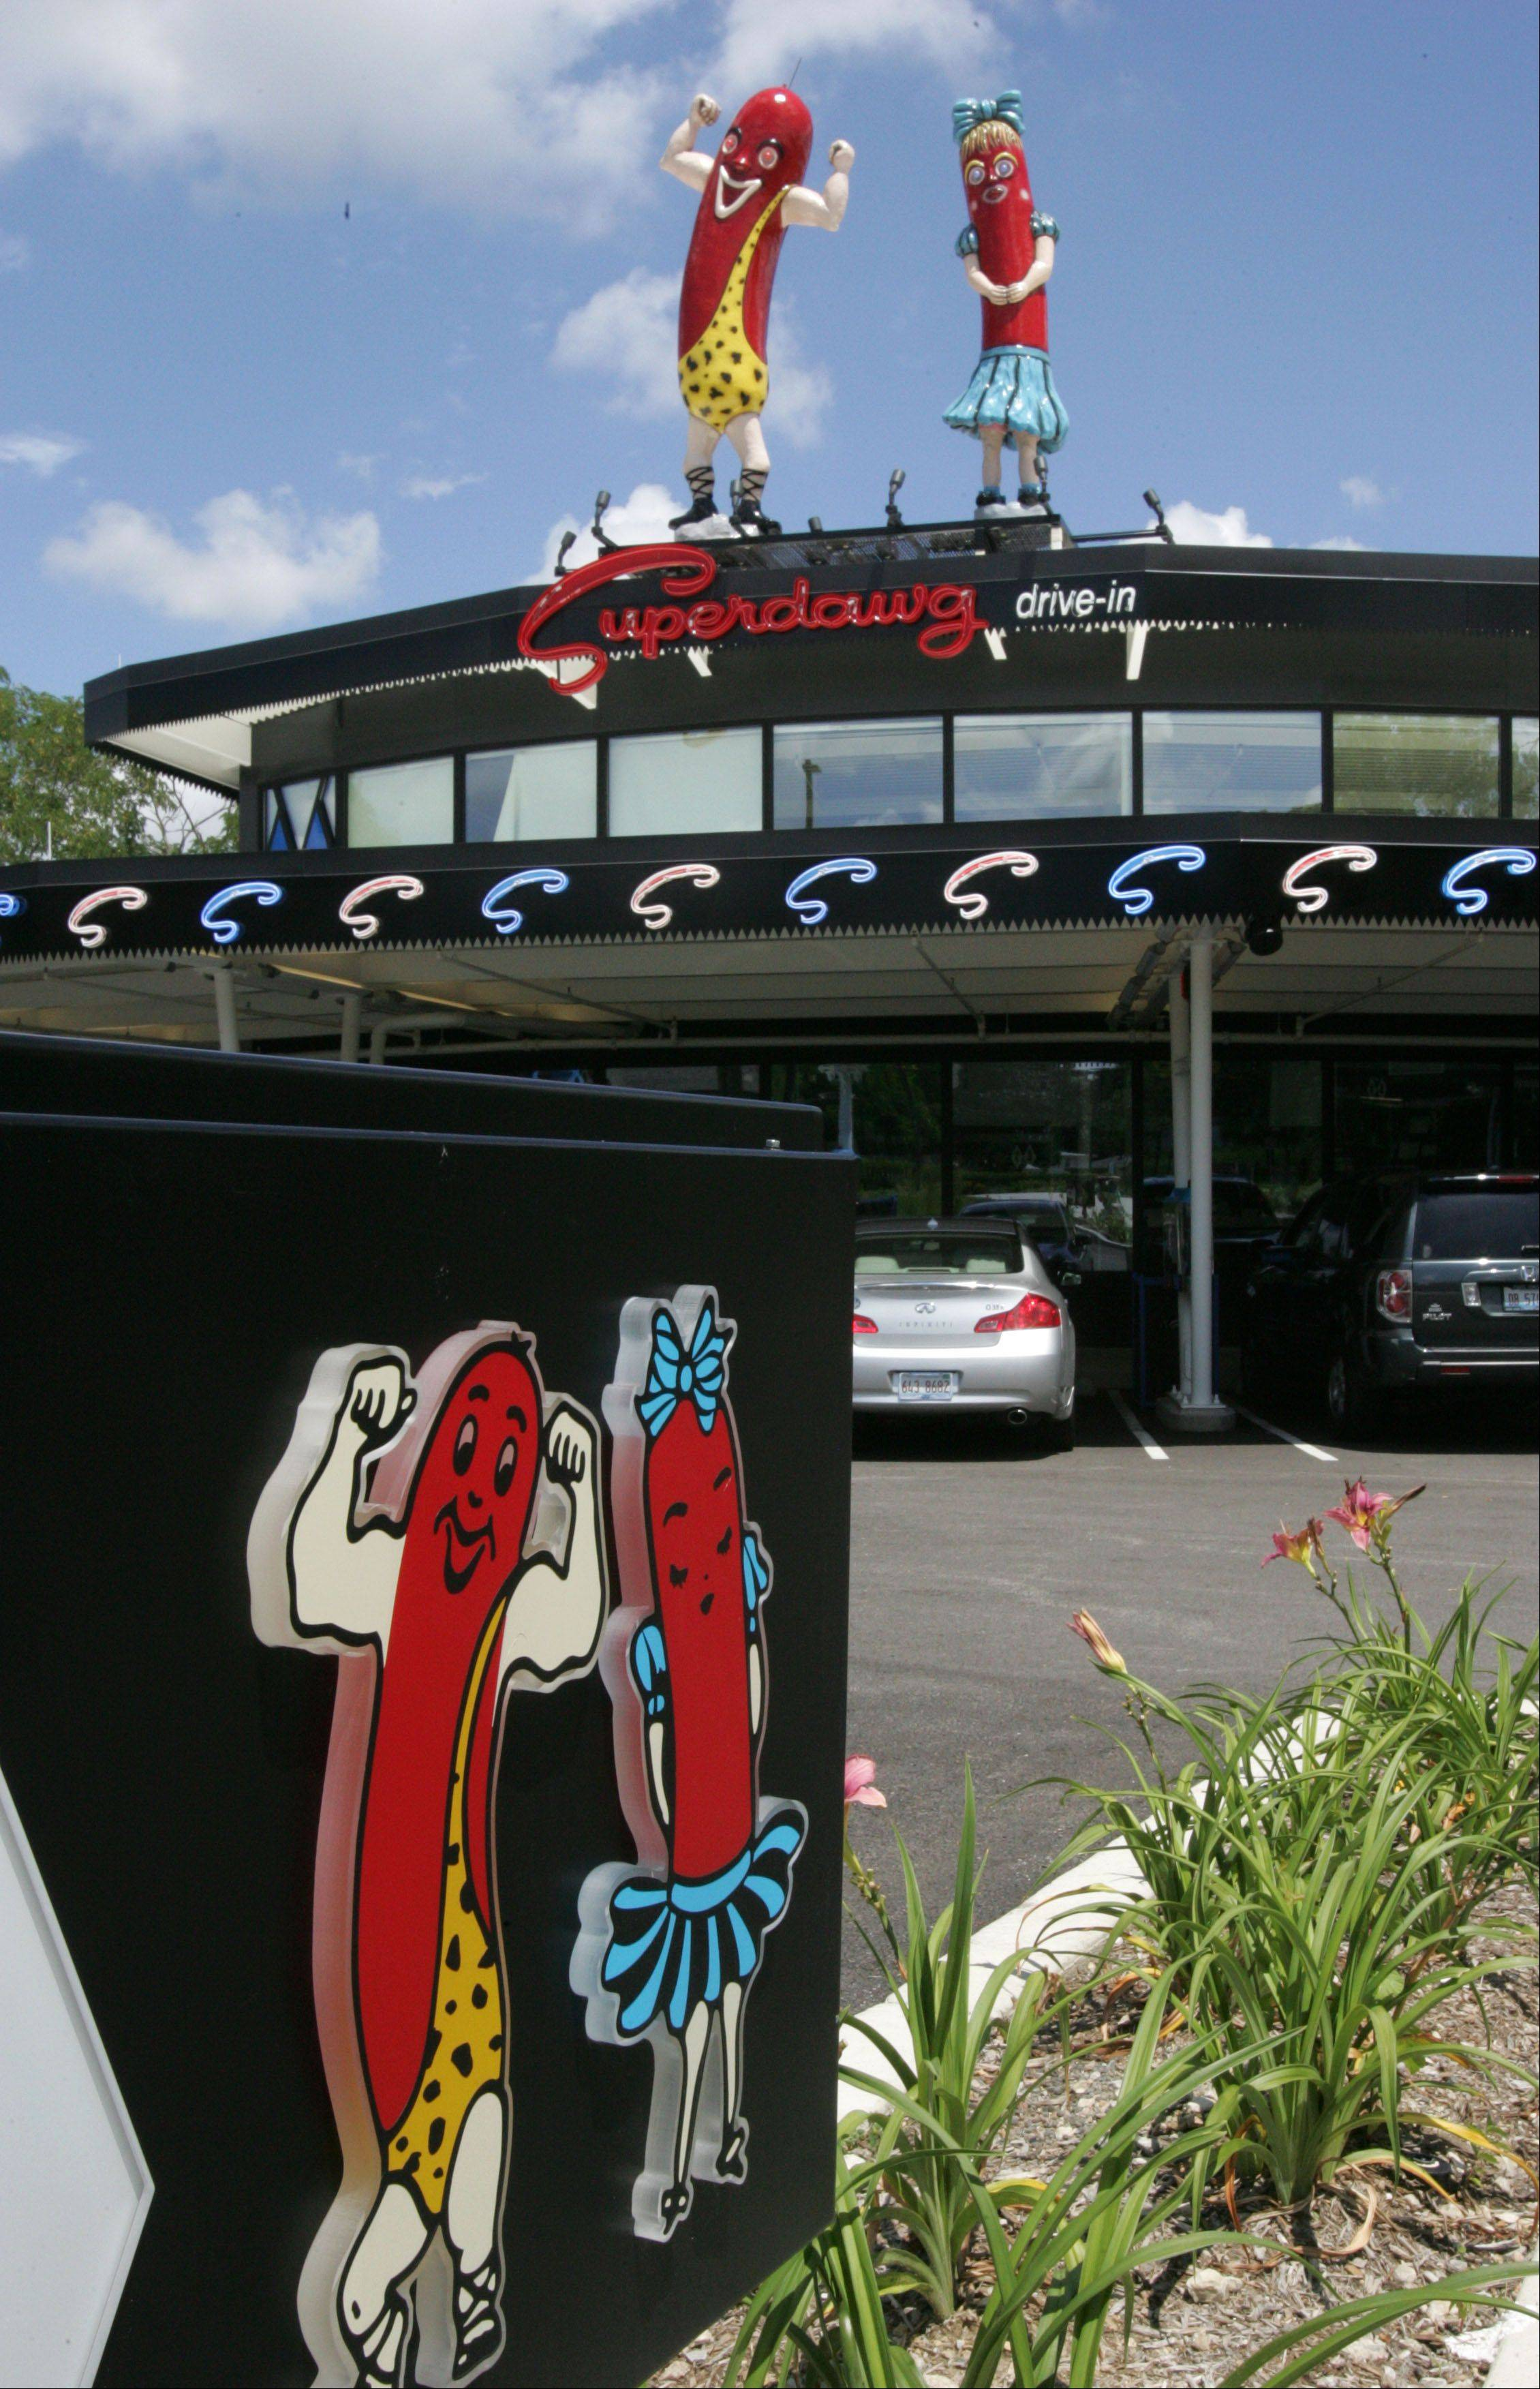 The two hot dogs top the Superdawg Drive-In in Wheeling.